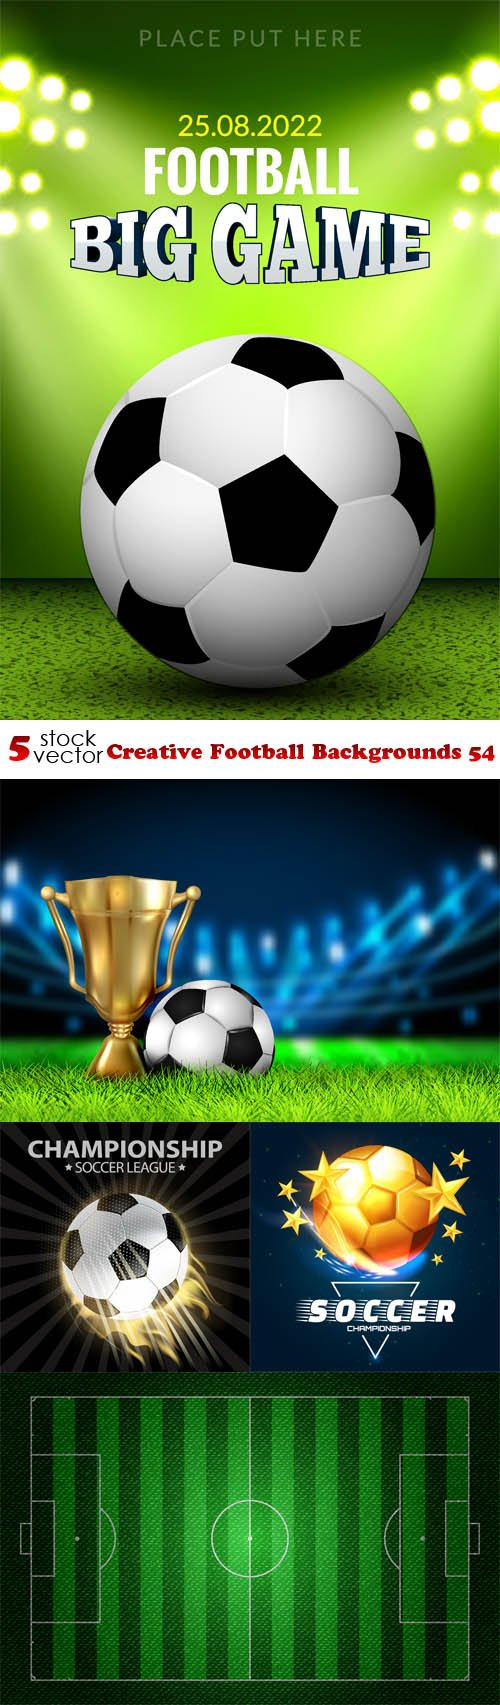 Vectors - Creative Football Backgrounds 54